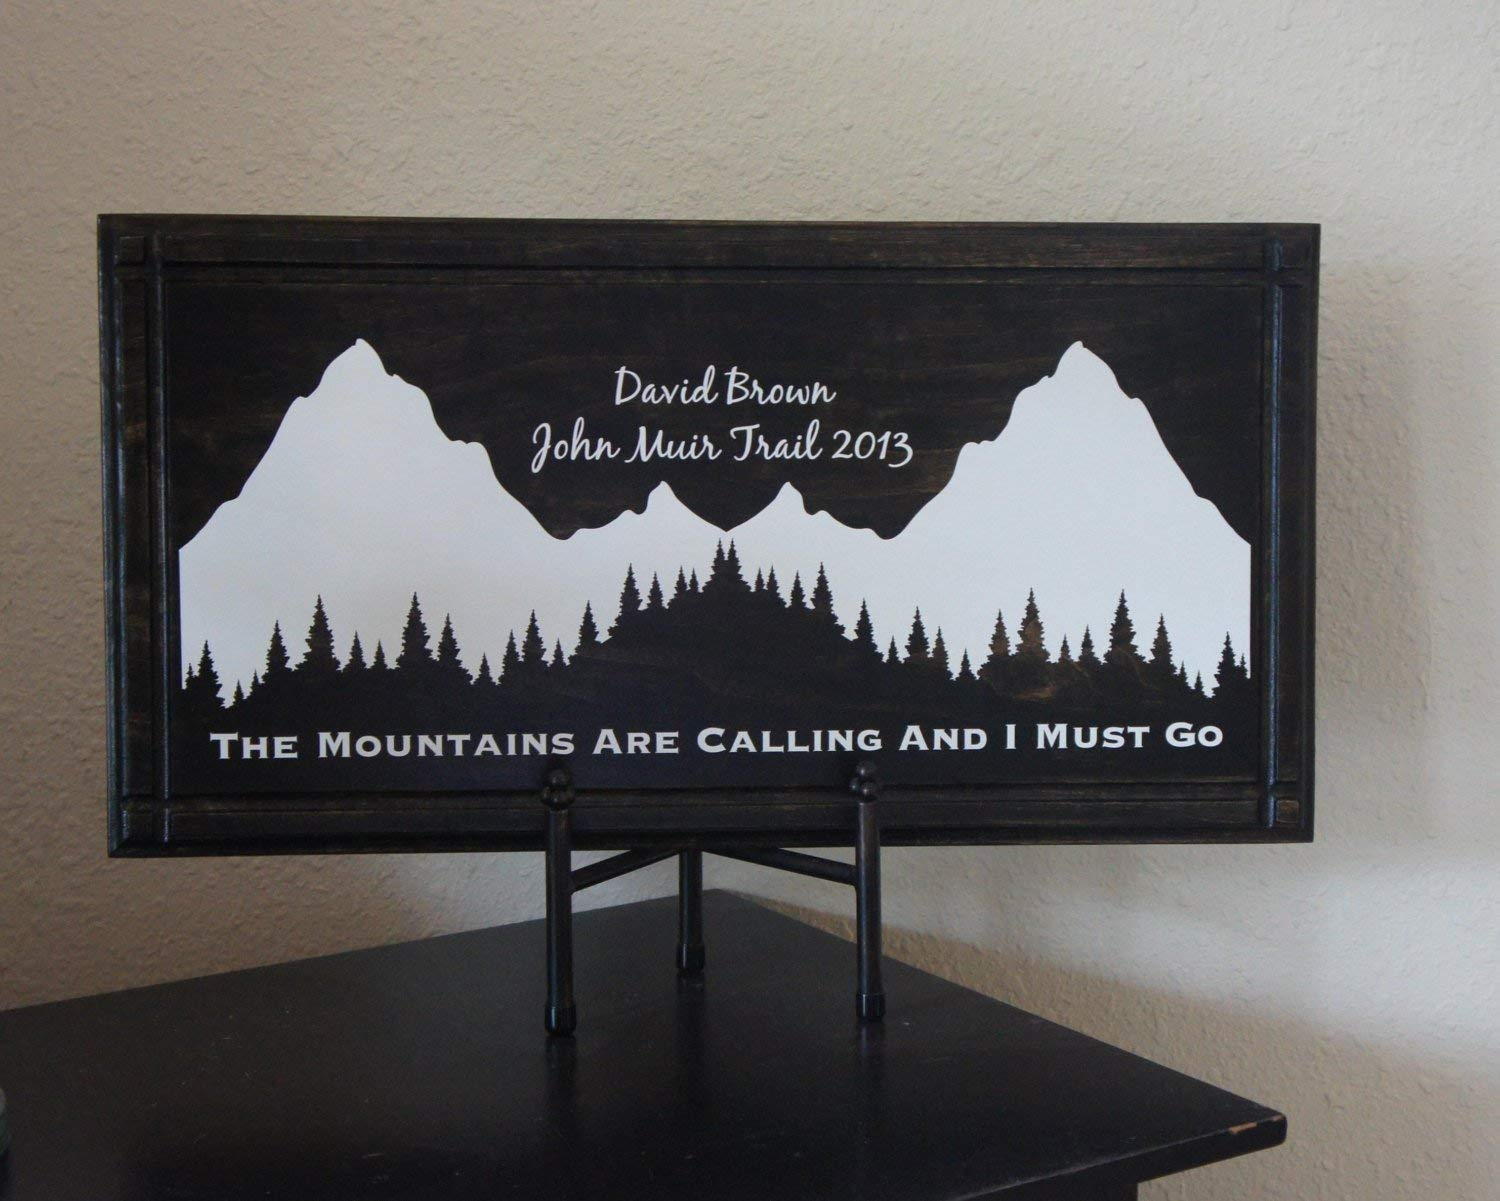 Personalized John favorite Free shipping on posting reviews Muir Trial Mountai sign plaque. The